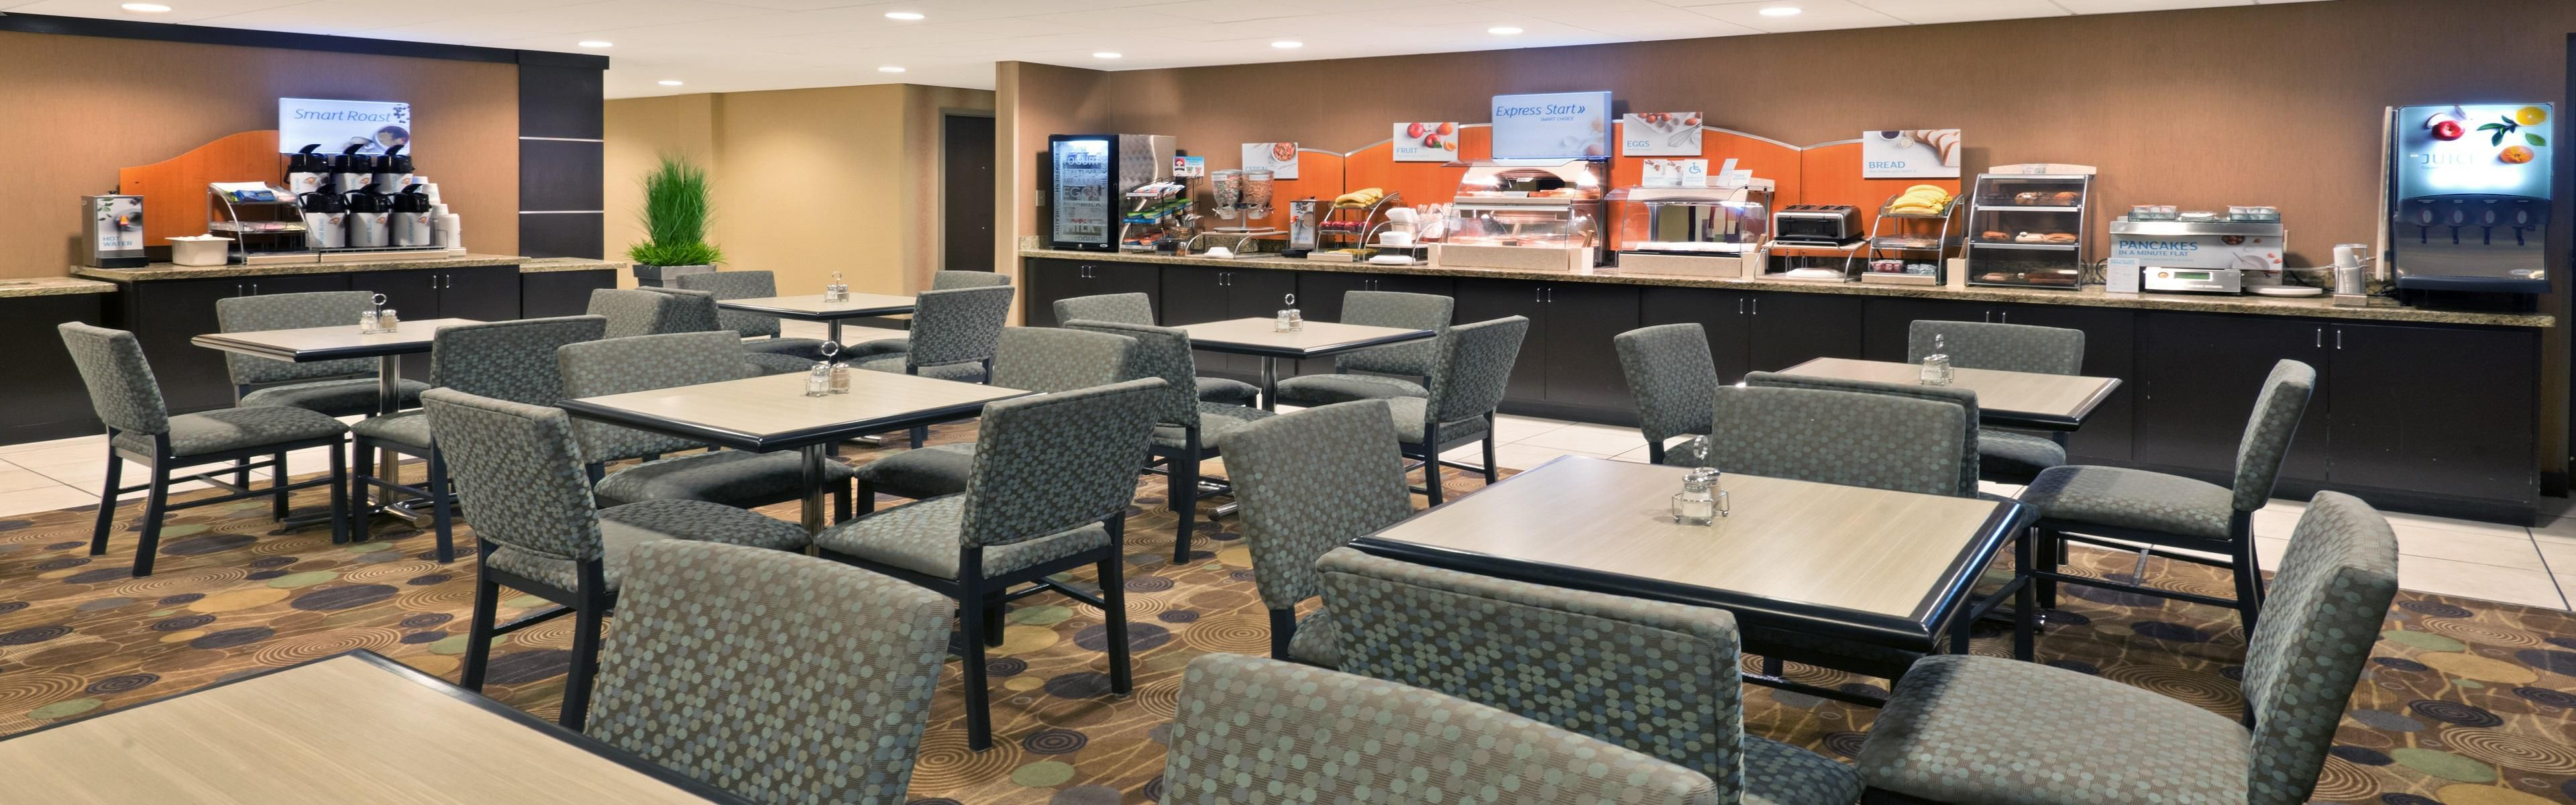 Holiday Inn Express & Suites Colby image 3